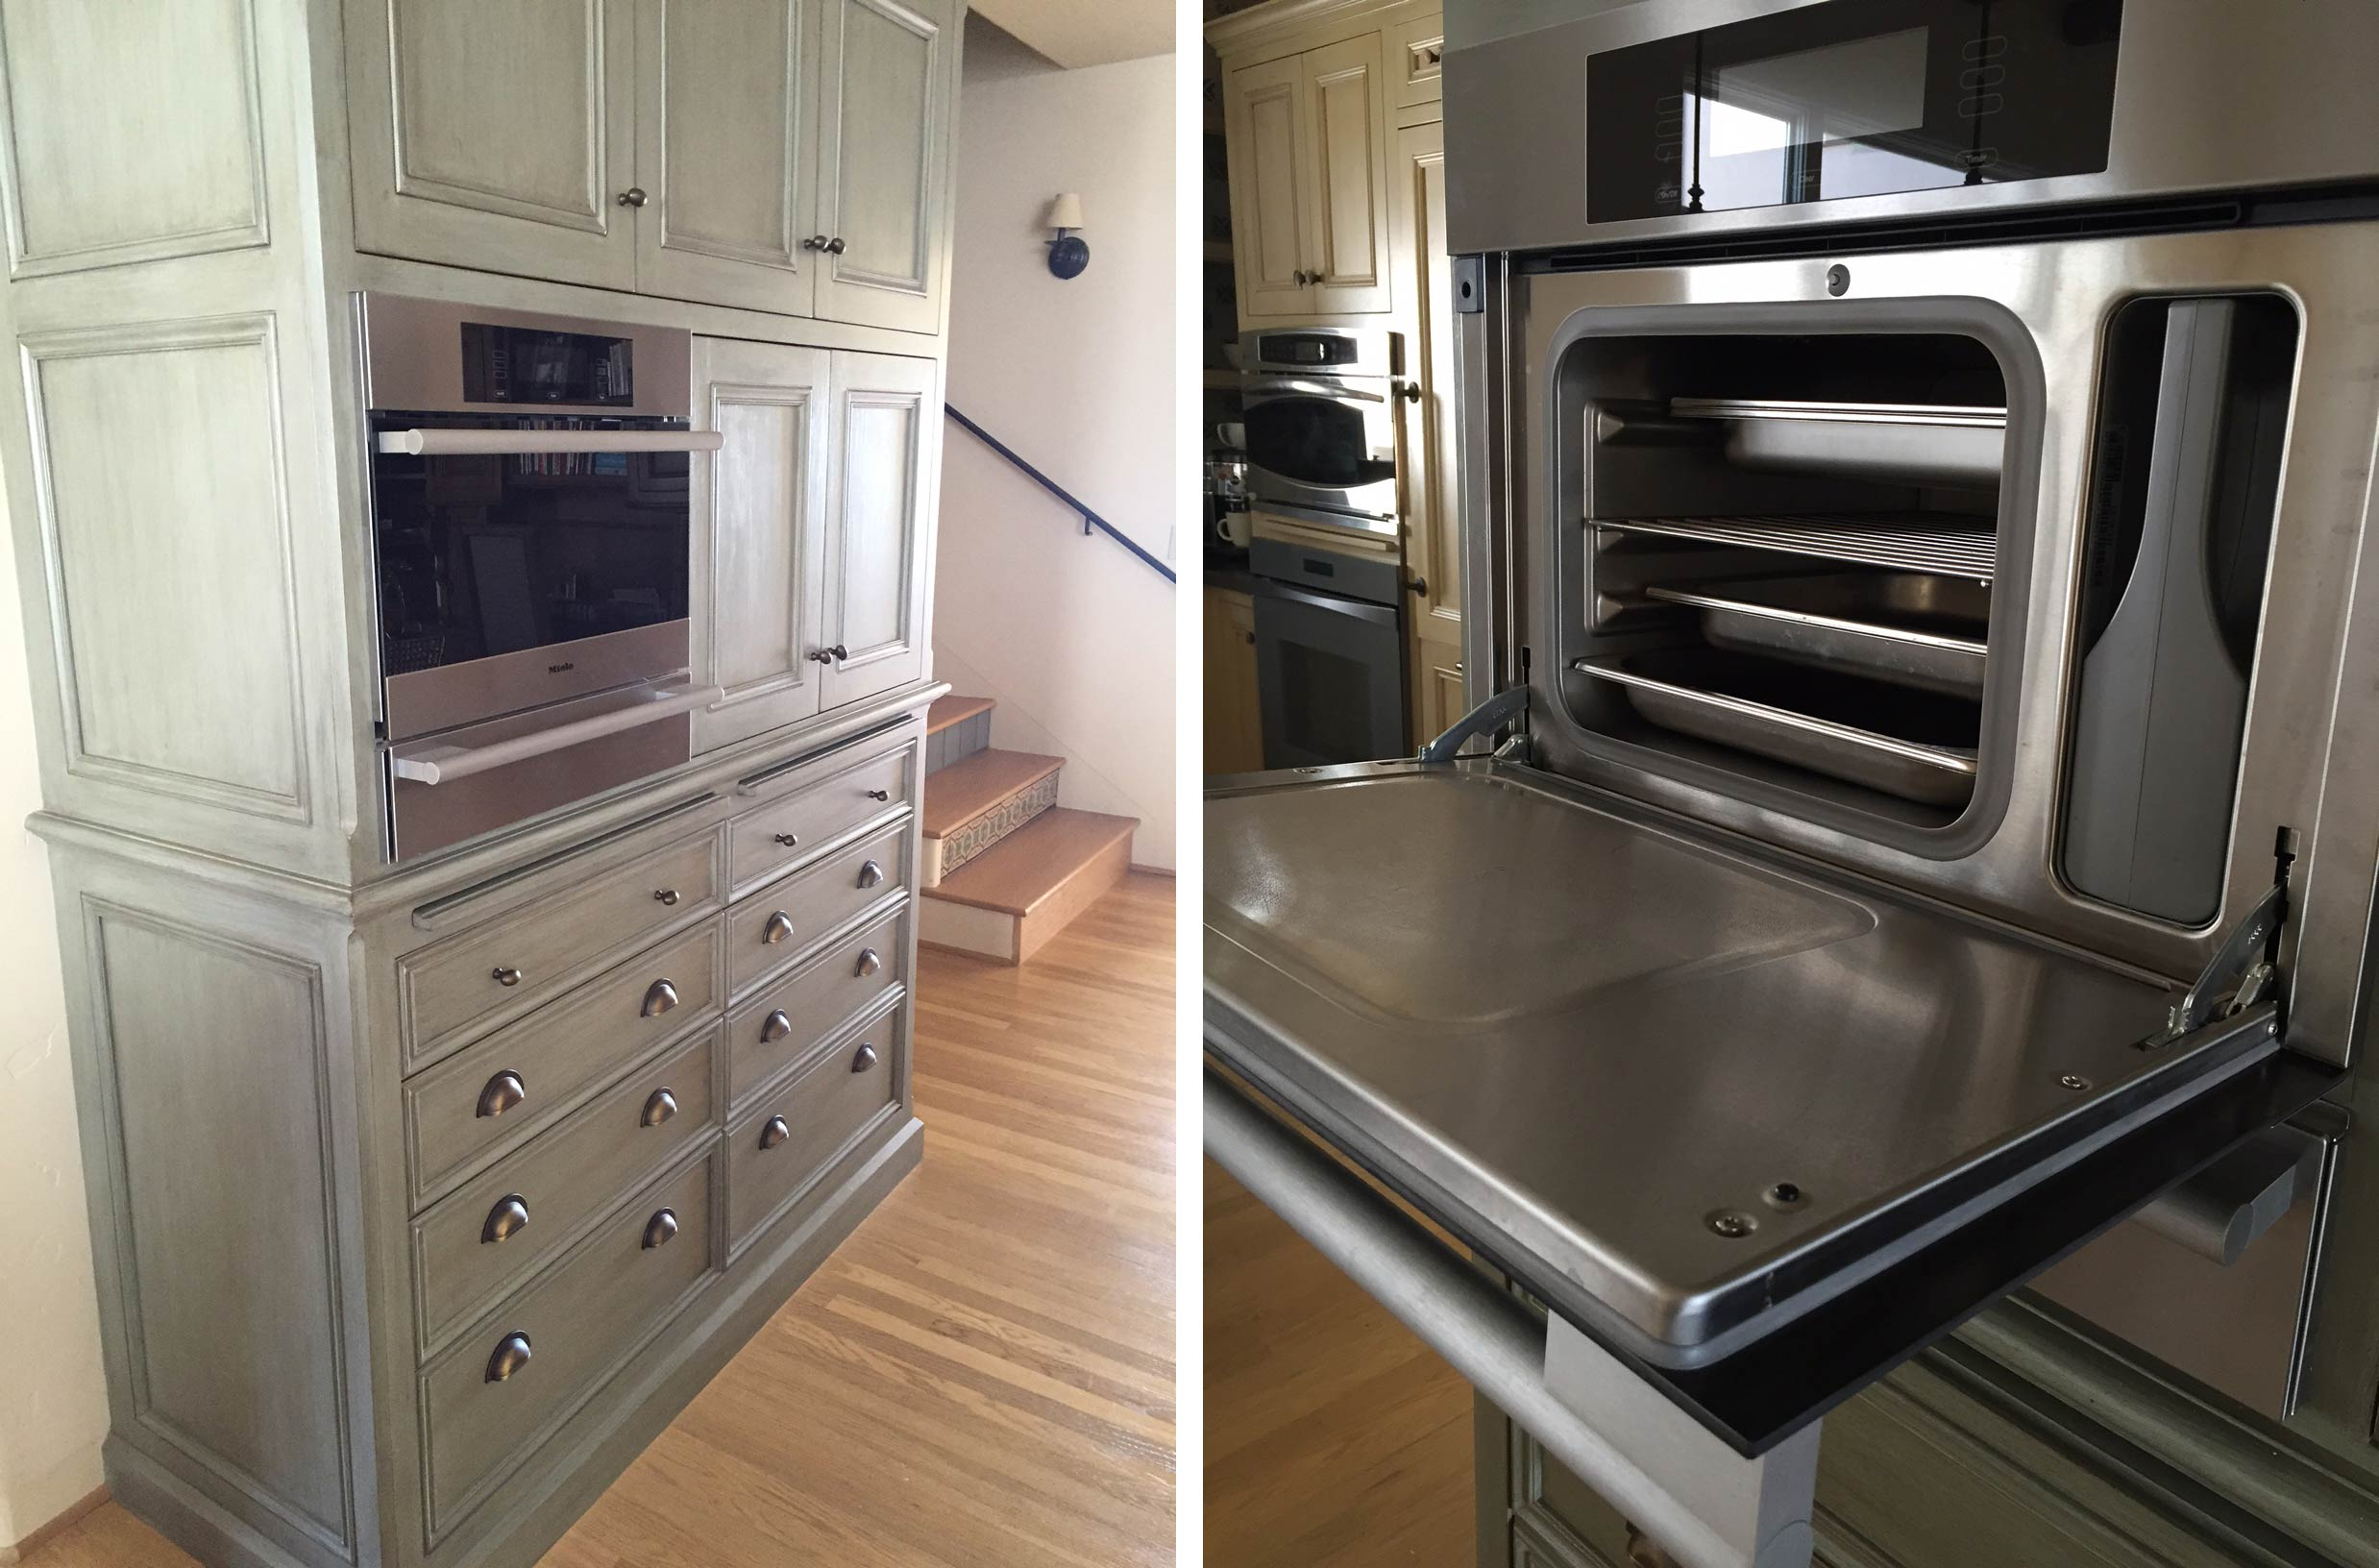 Induction cooktops and steam ovens in home kitchens for Induction oven pros and cons